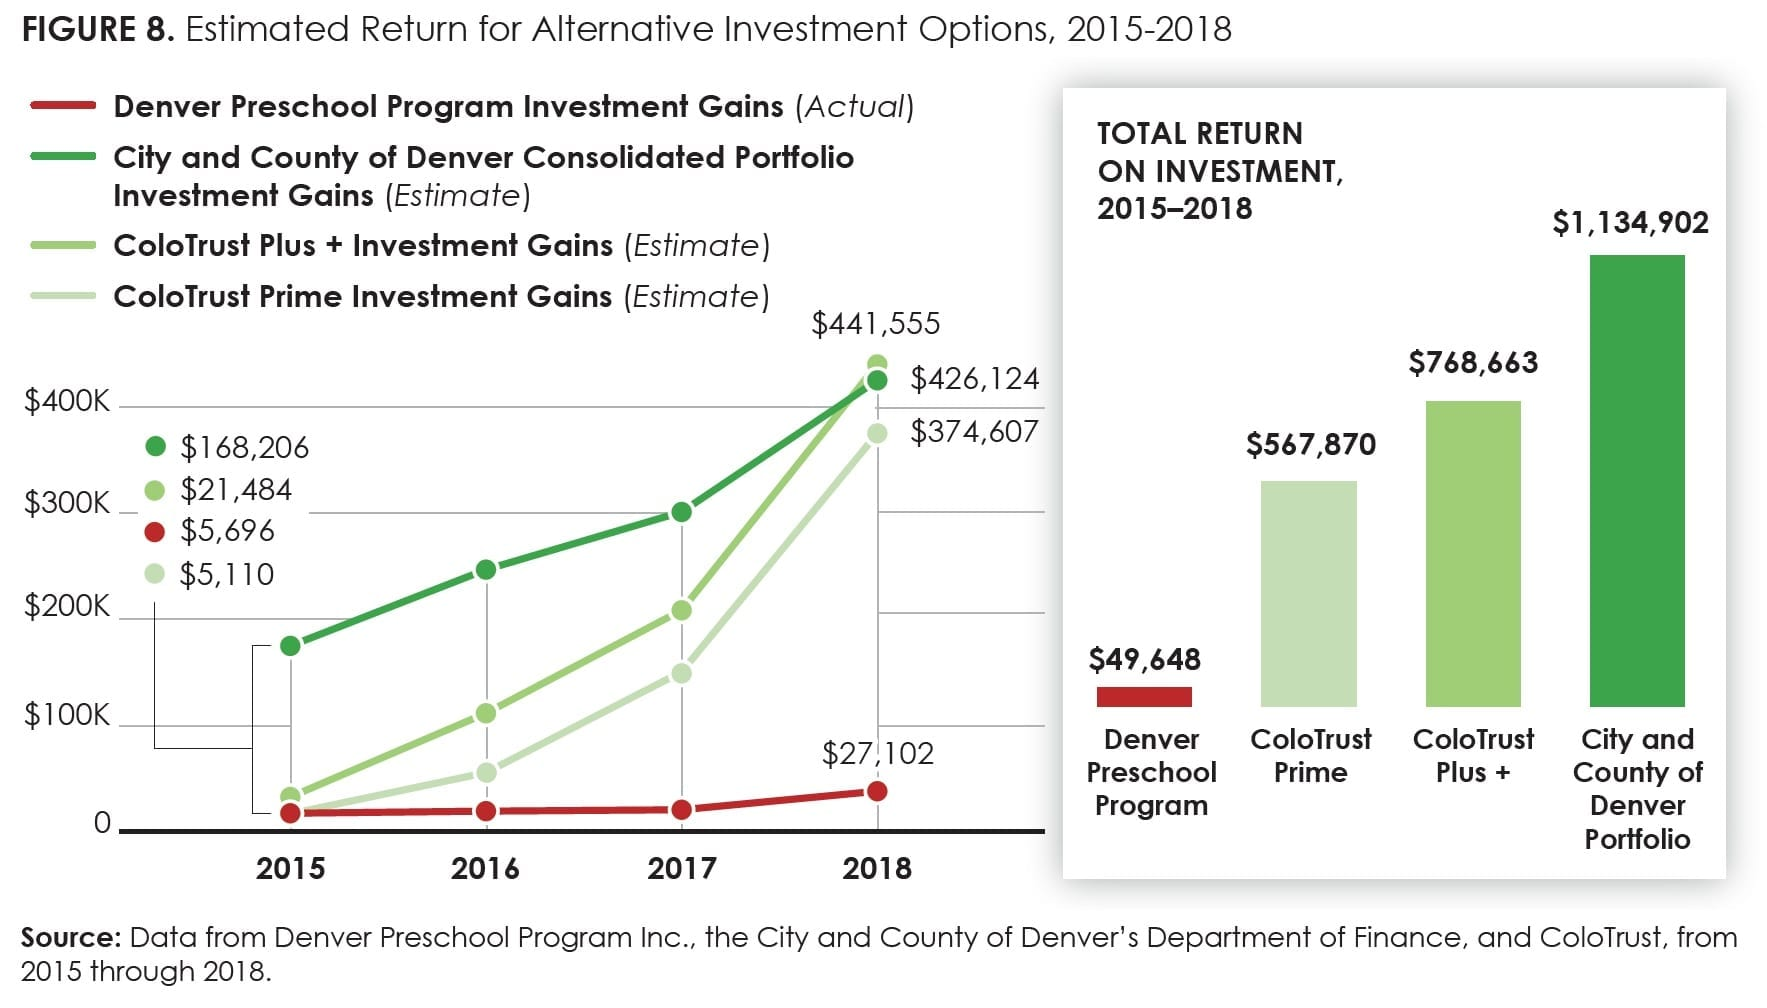 Figure8_Estimated Return for Alternative Investment Options, 2015-2018